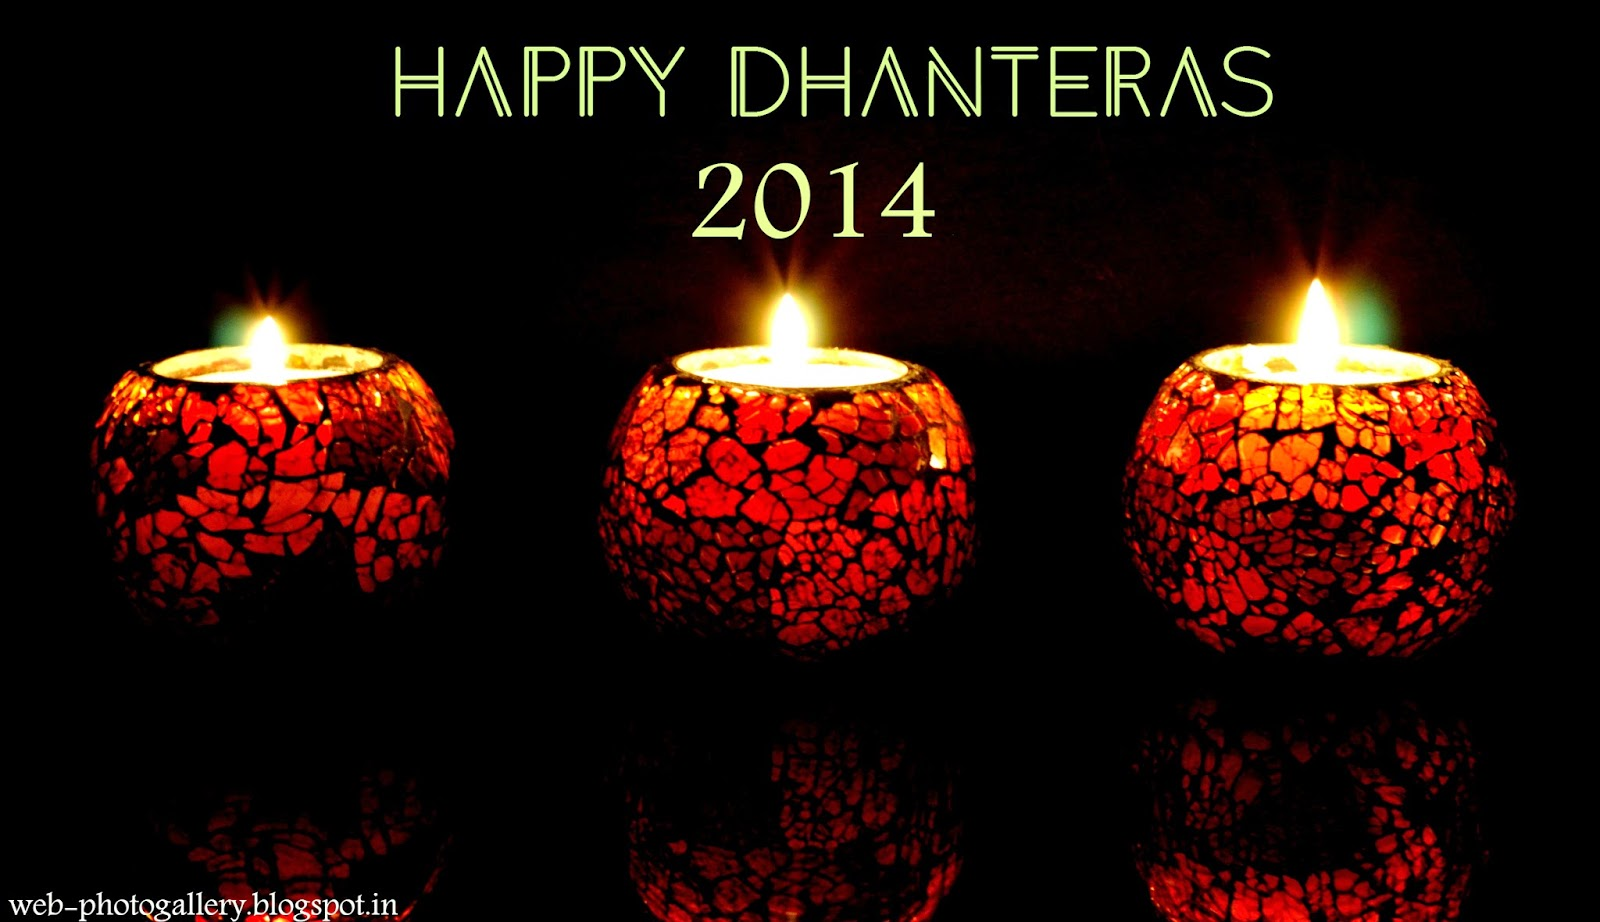 Happy Diwali And Dhanteras Wallpapers: Happy Dhanteras 2014 HD Wallpapers